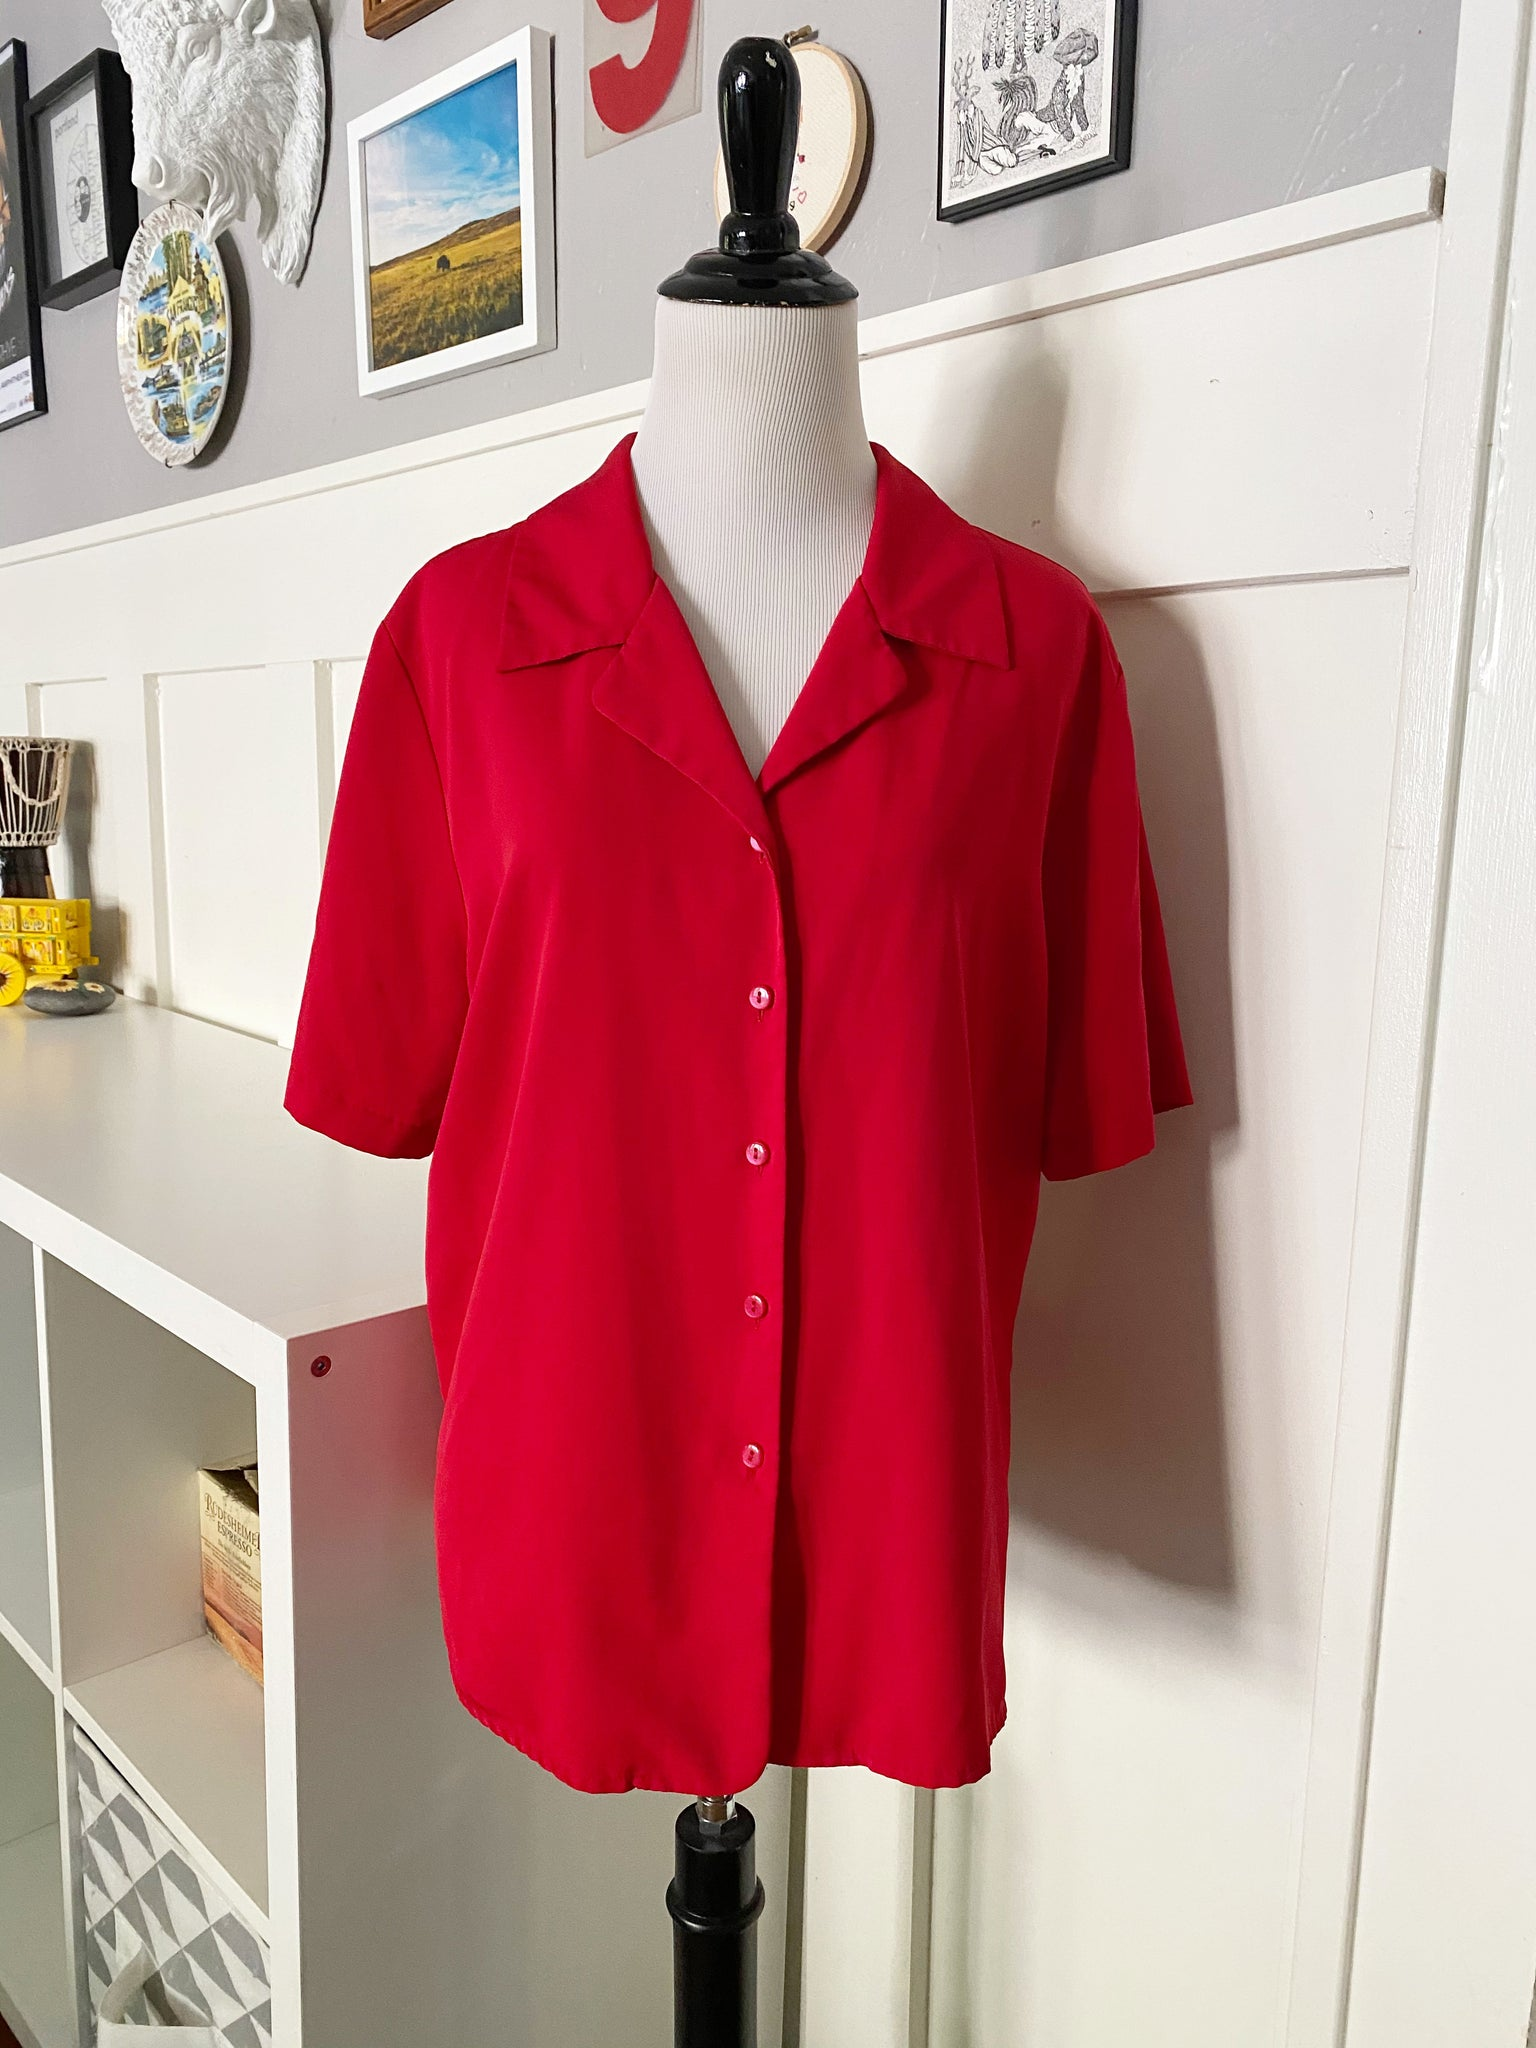 Red Short Sleeve Button Up - Size M/L